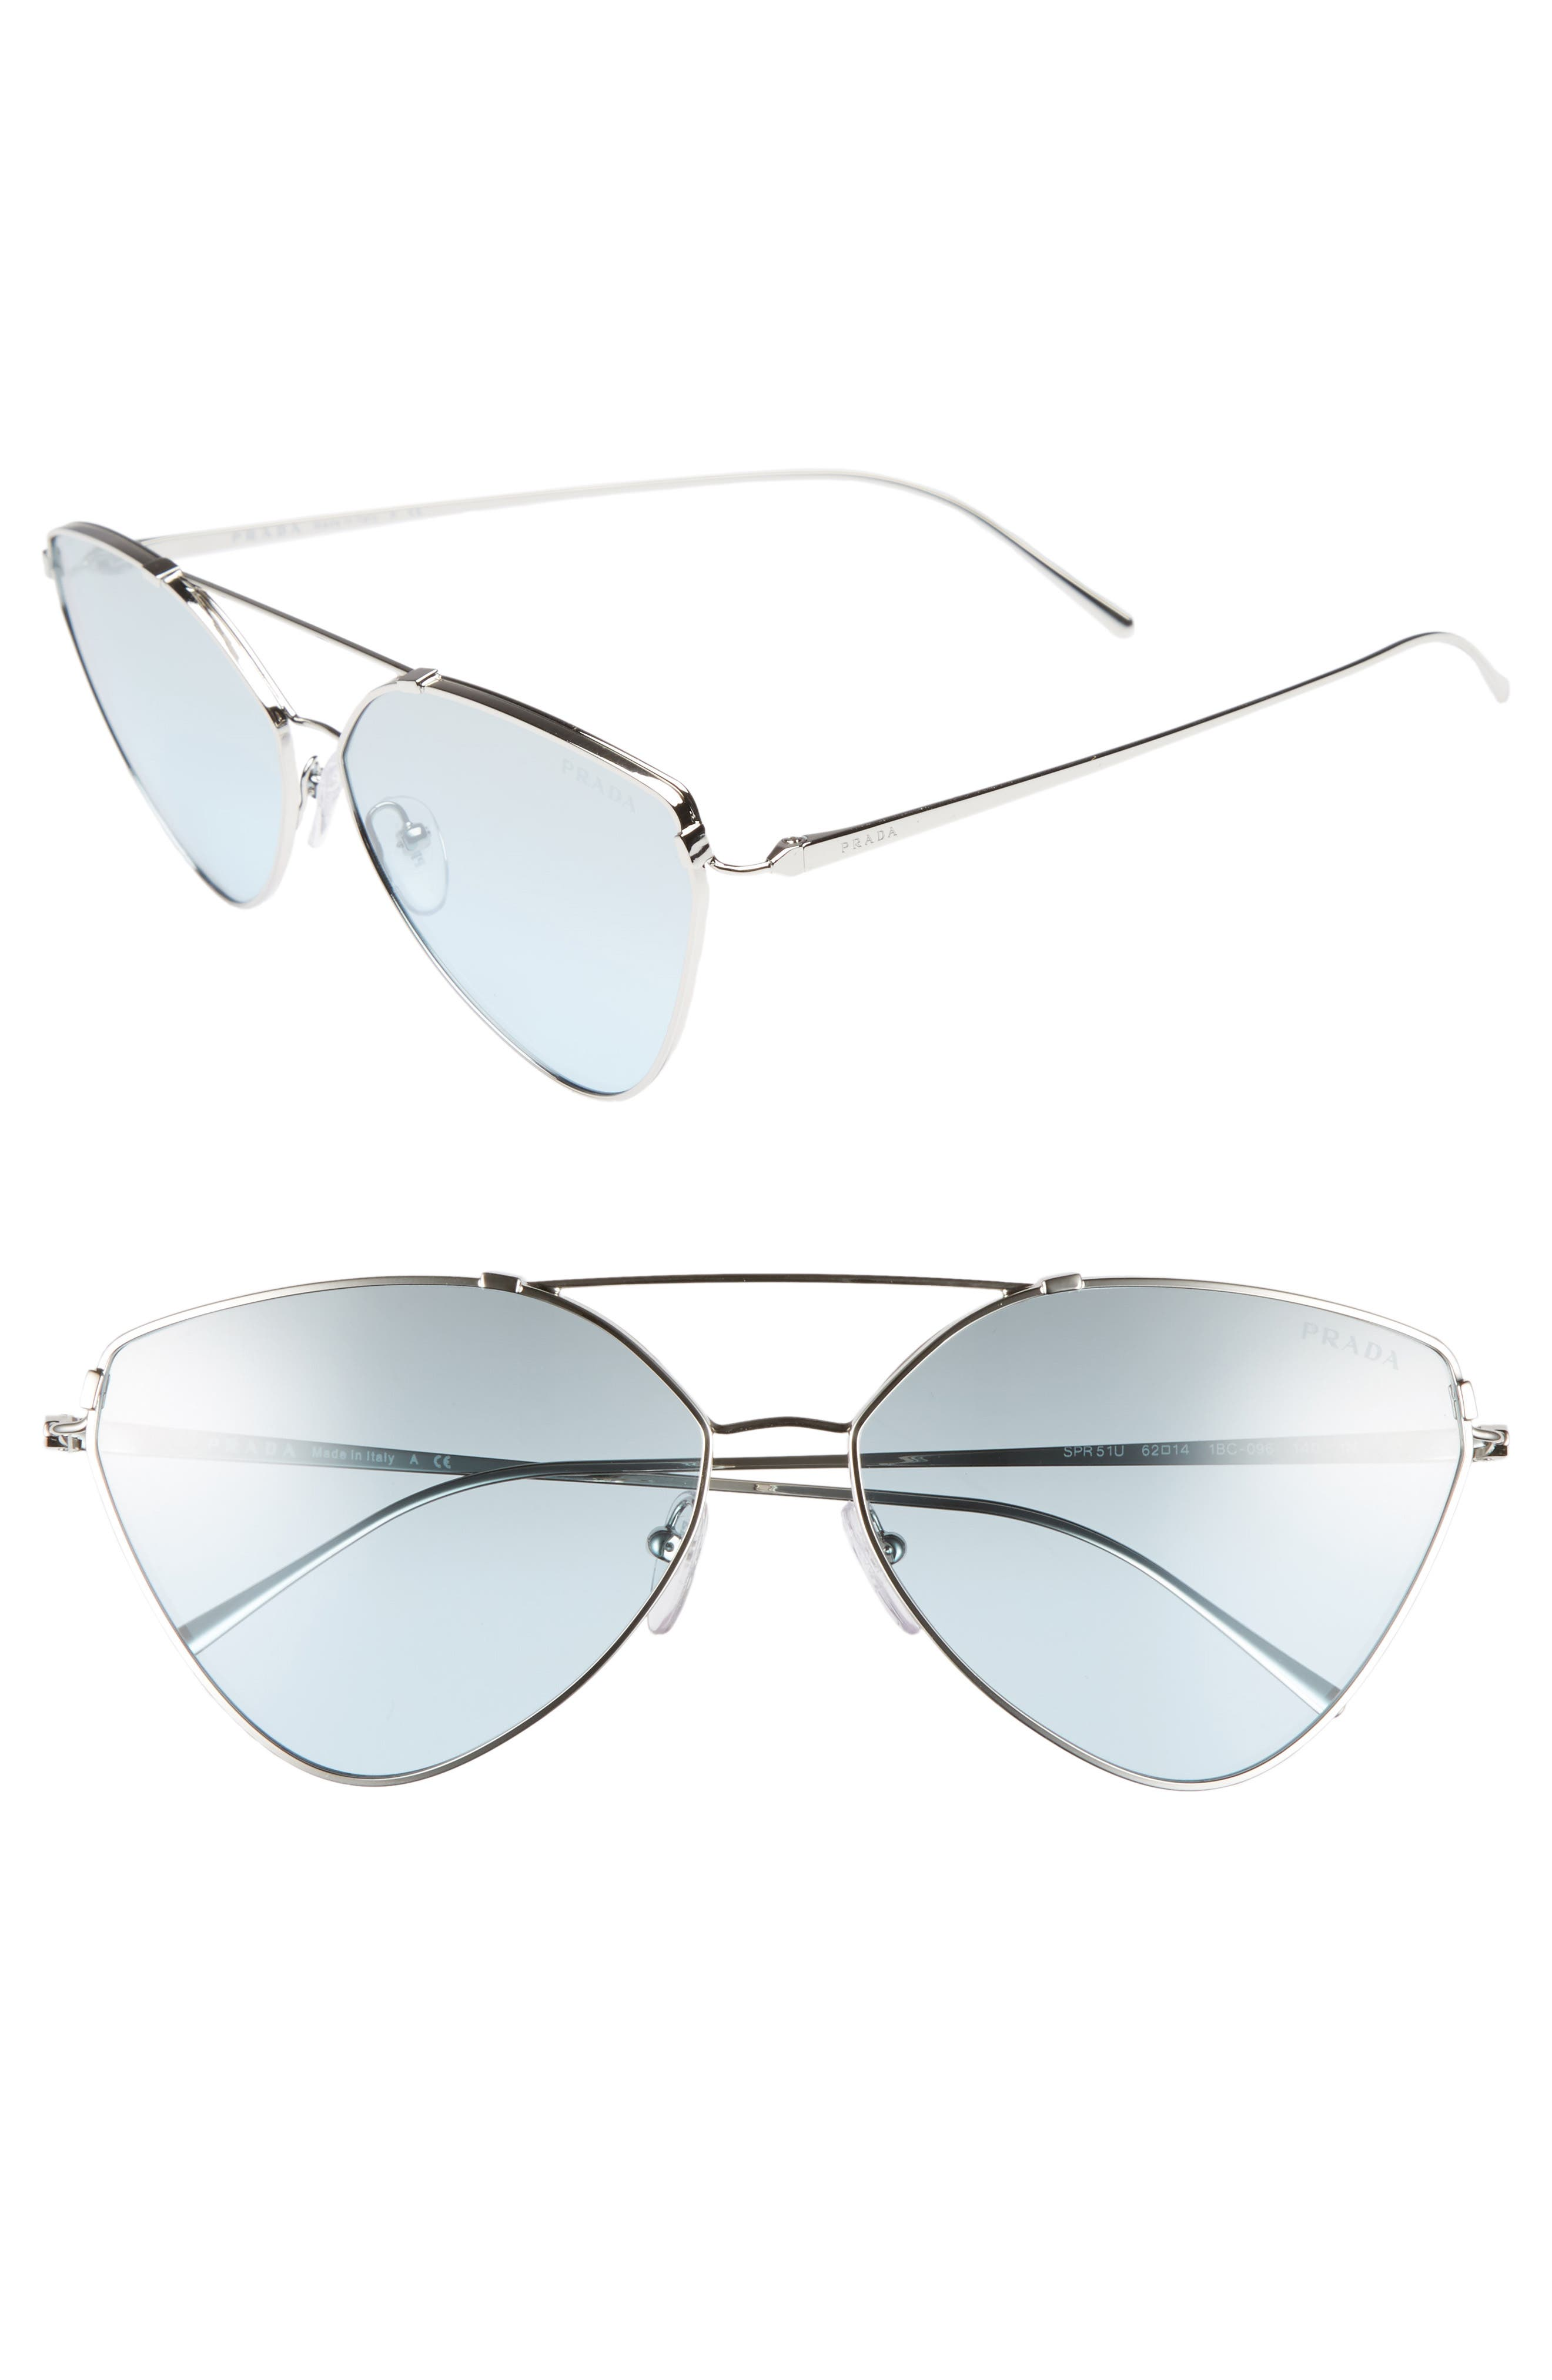 62mm Oversize Aviator Sunglasses,                         Main,                         color, Silver